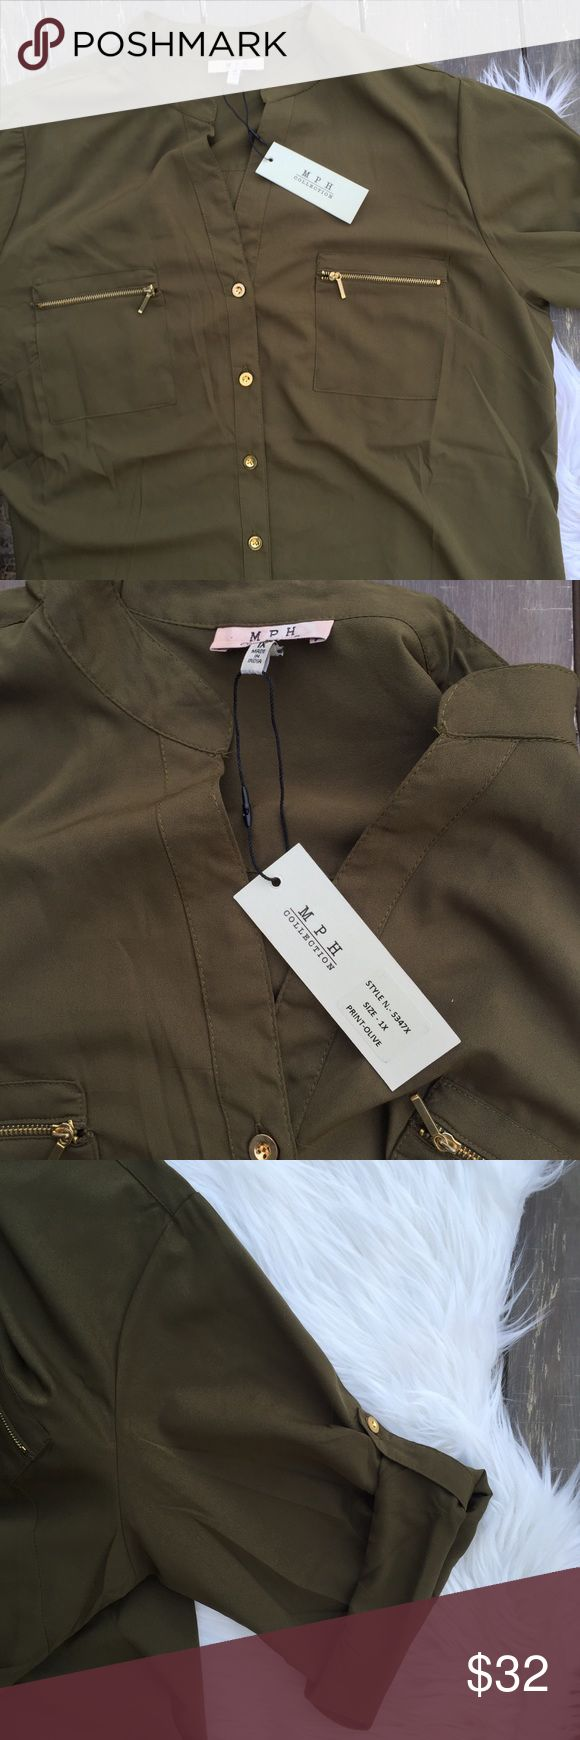 "🐪 NWT 🌵 MPH Collection Olive Green Tunic Dress NWT 🌵 MPH Collection Olive Green Tunic Dress 1X | CUTE olive/army green tunic dress with roll sleeves, zippered front pockets, and gold buttons down the front. Size 1X. New with tags. 38"" shoulder seam to hem. MPH Collection Dresses"